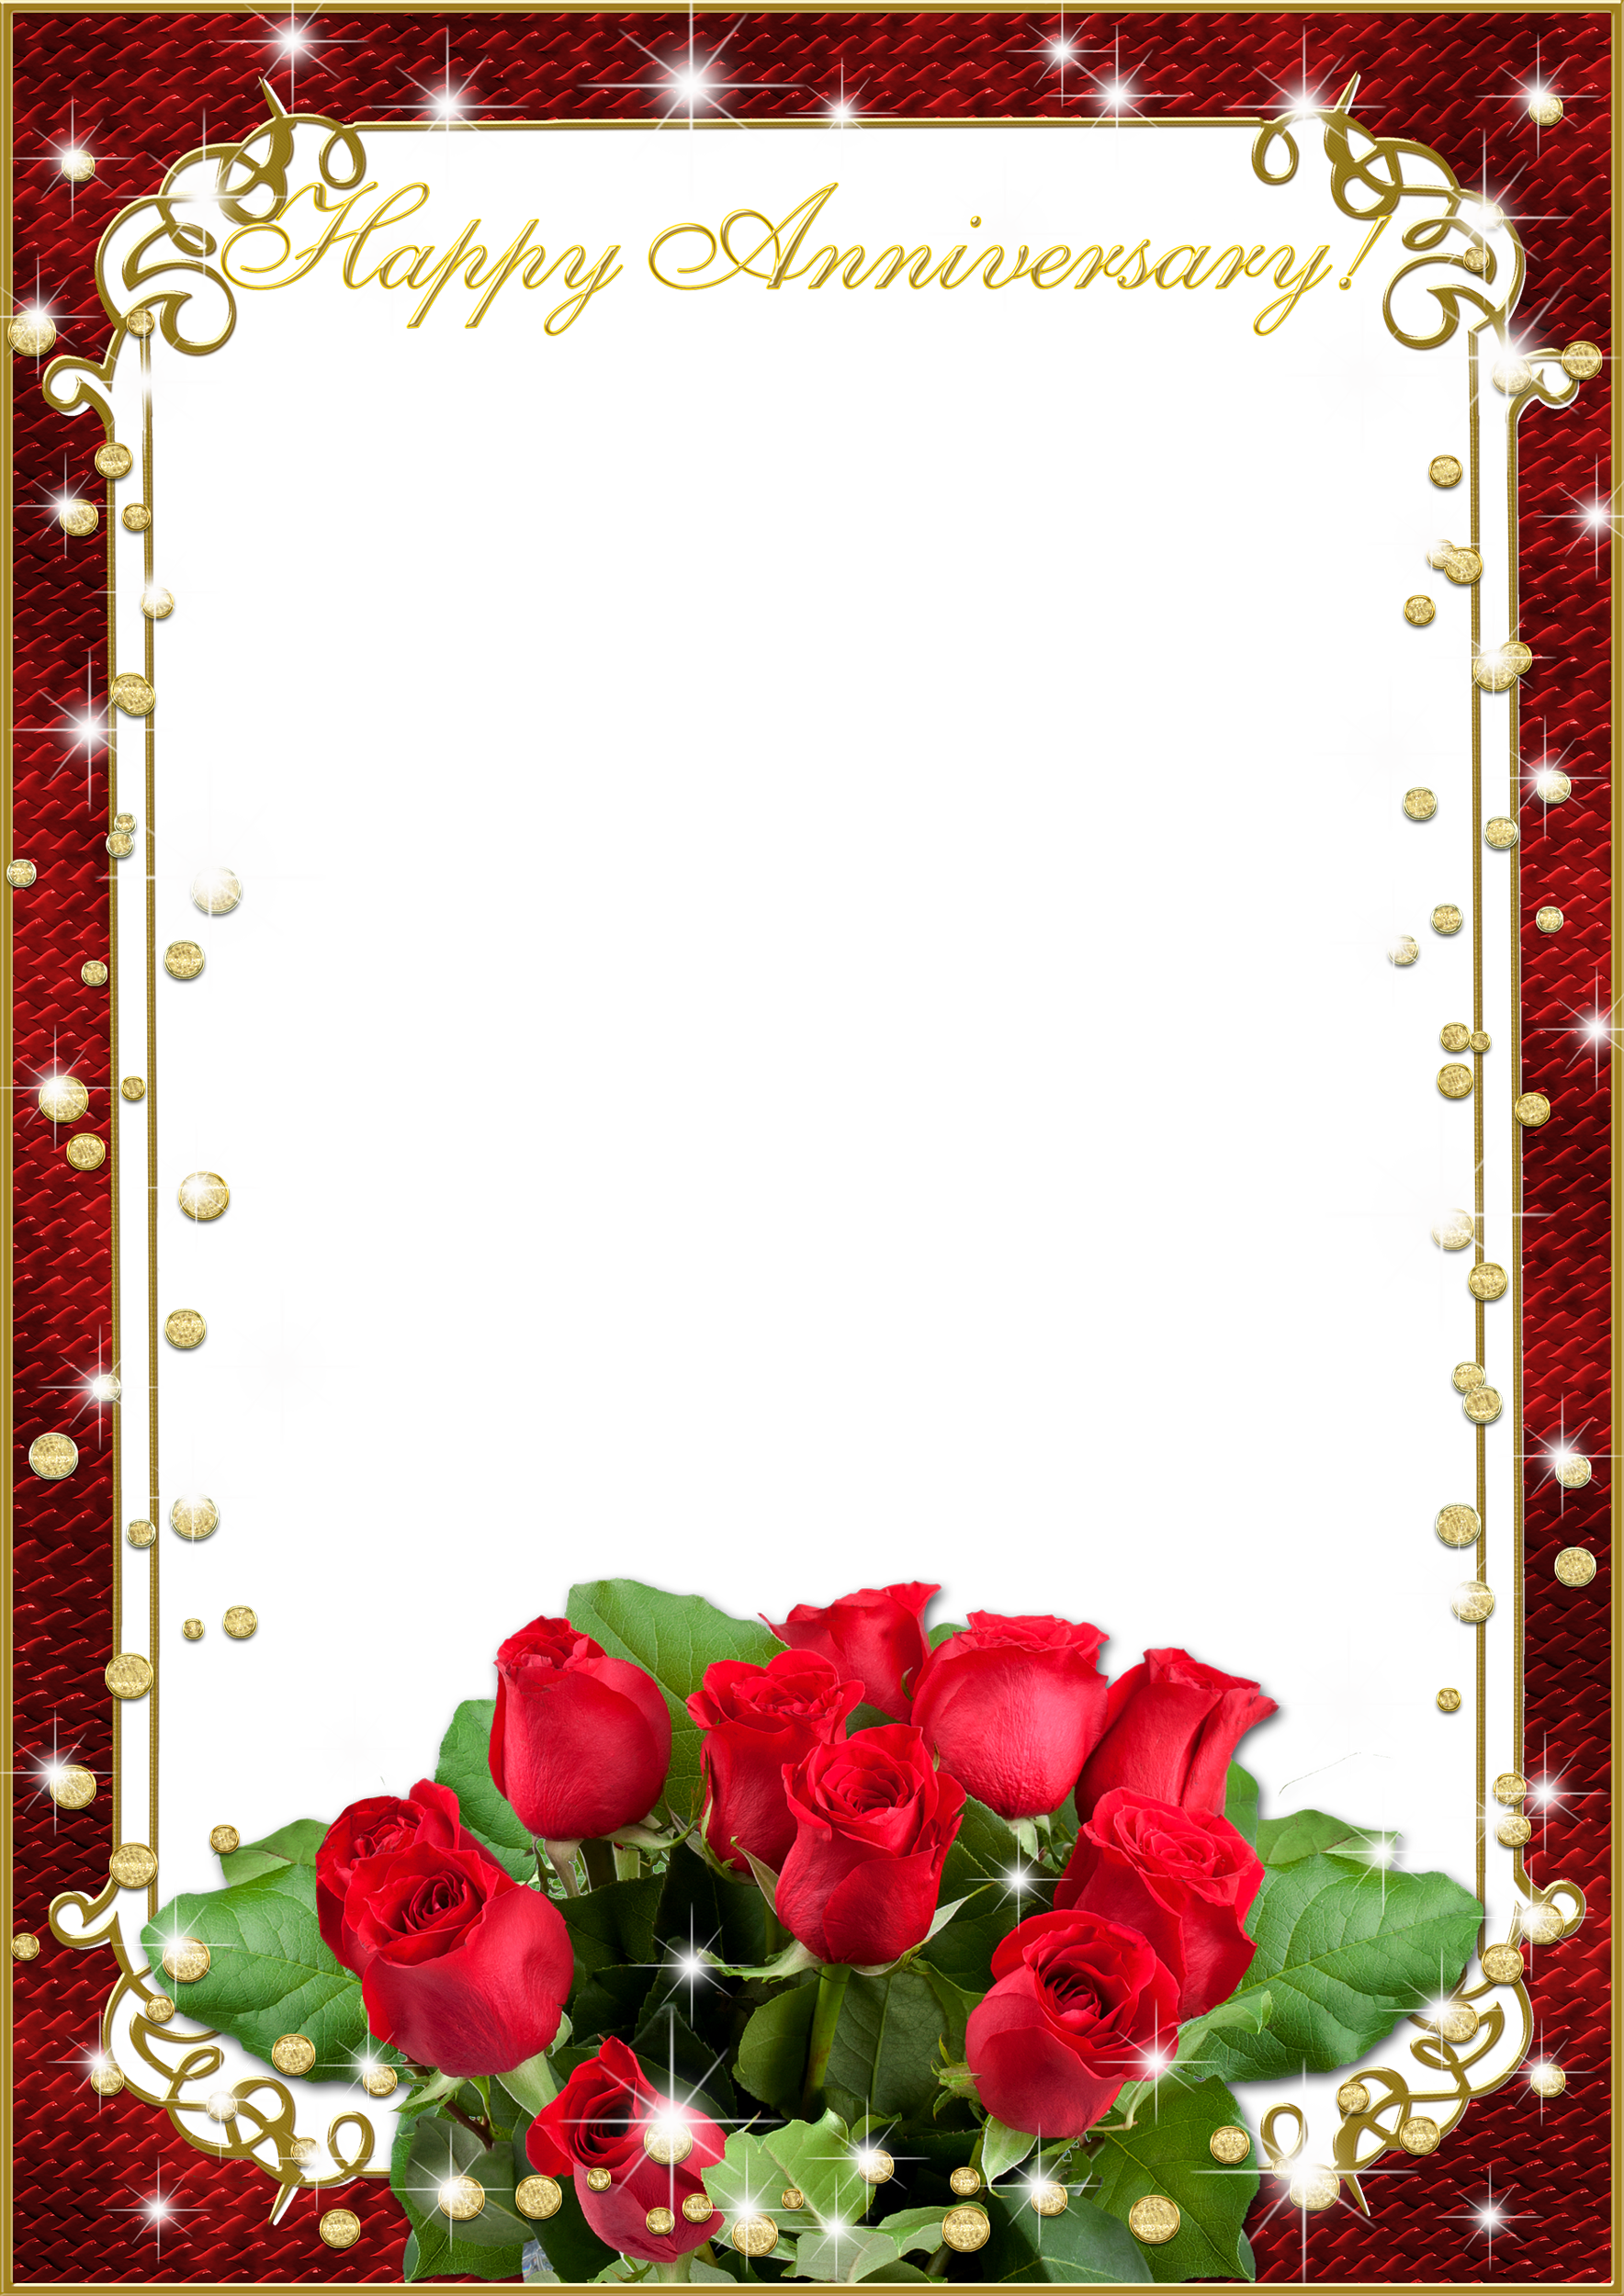 Png photo frames. Flower frame psd vector